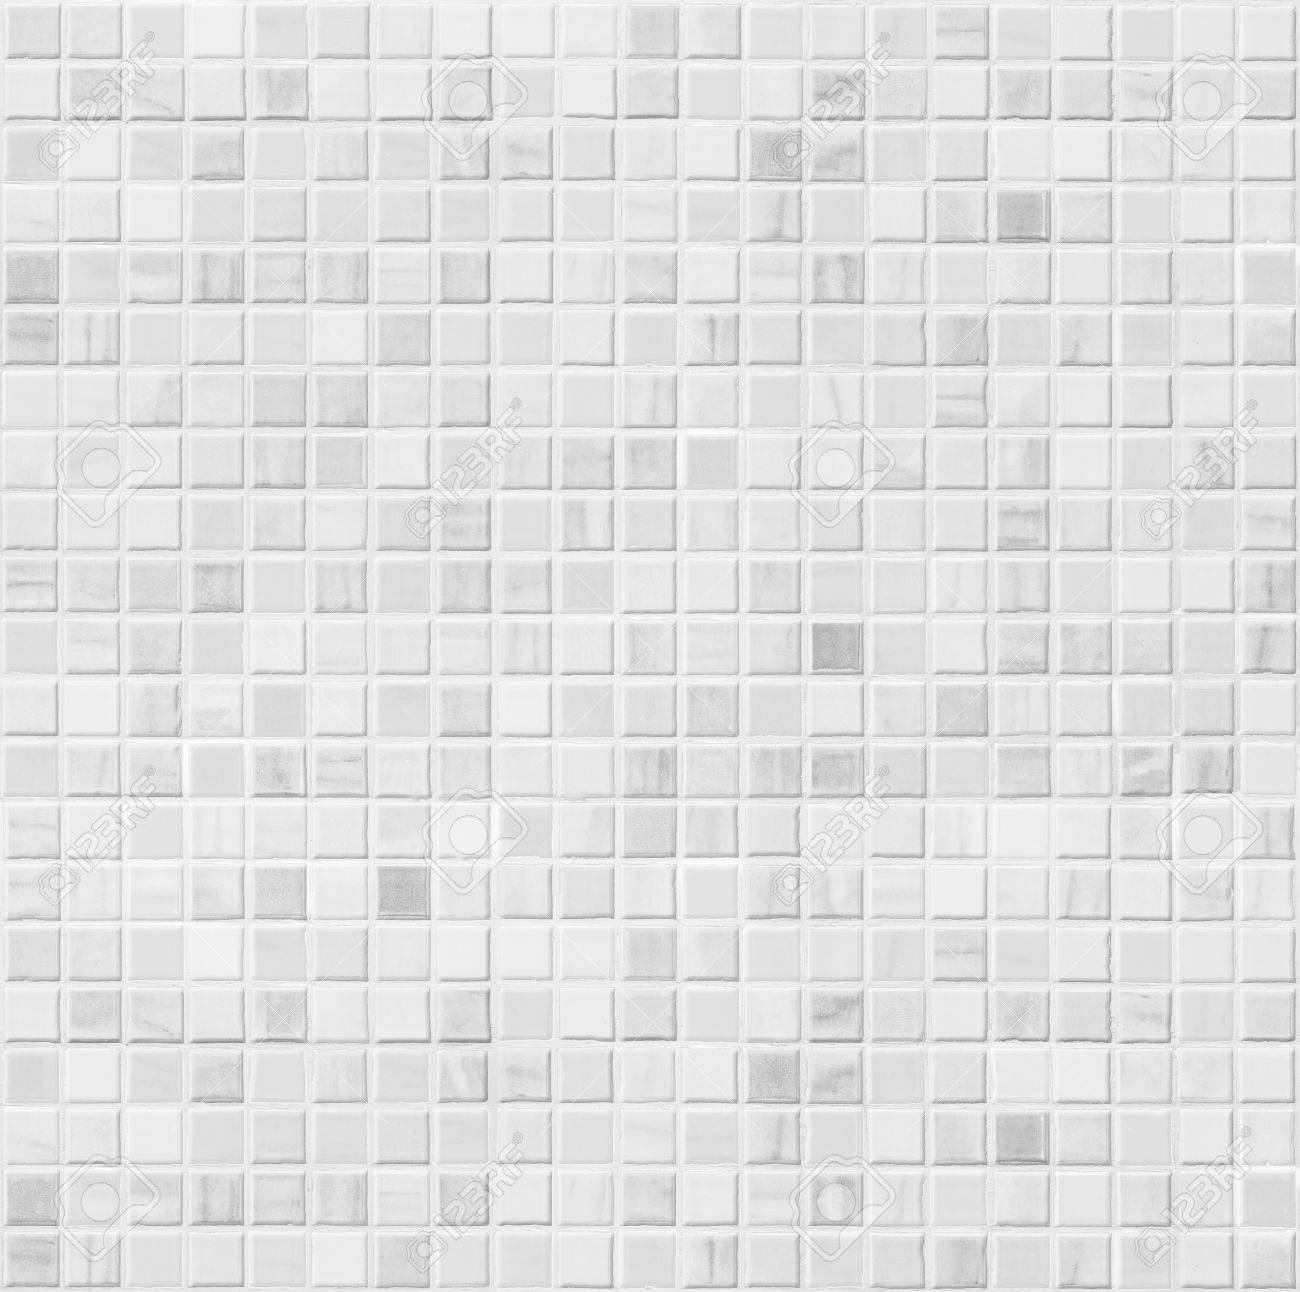 White Ceramic Bathroom Wall Tile Seamless Pattern For Background